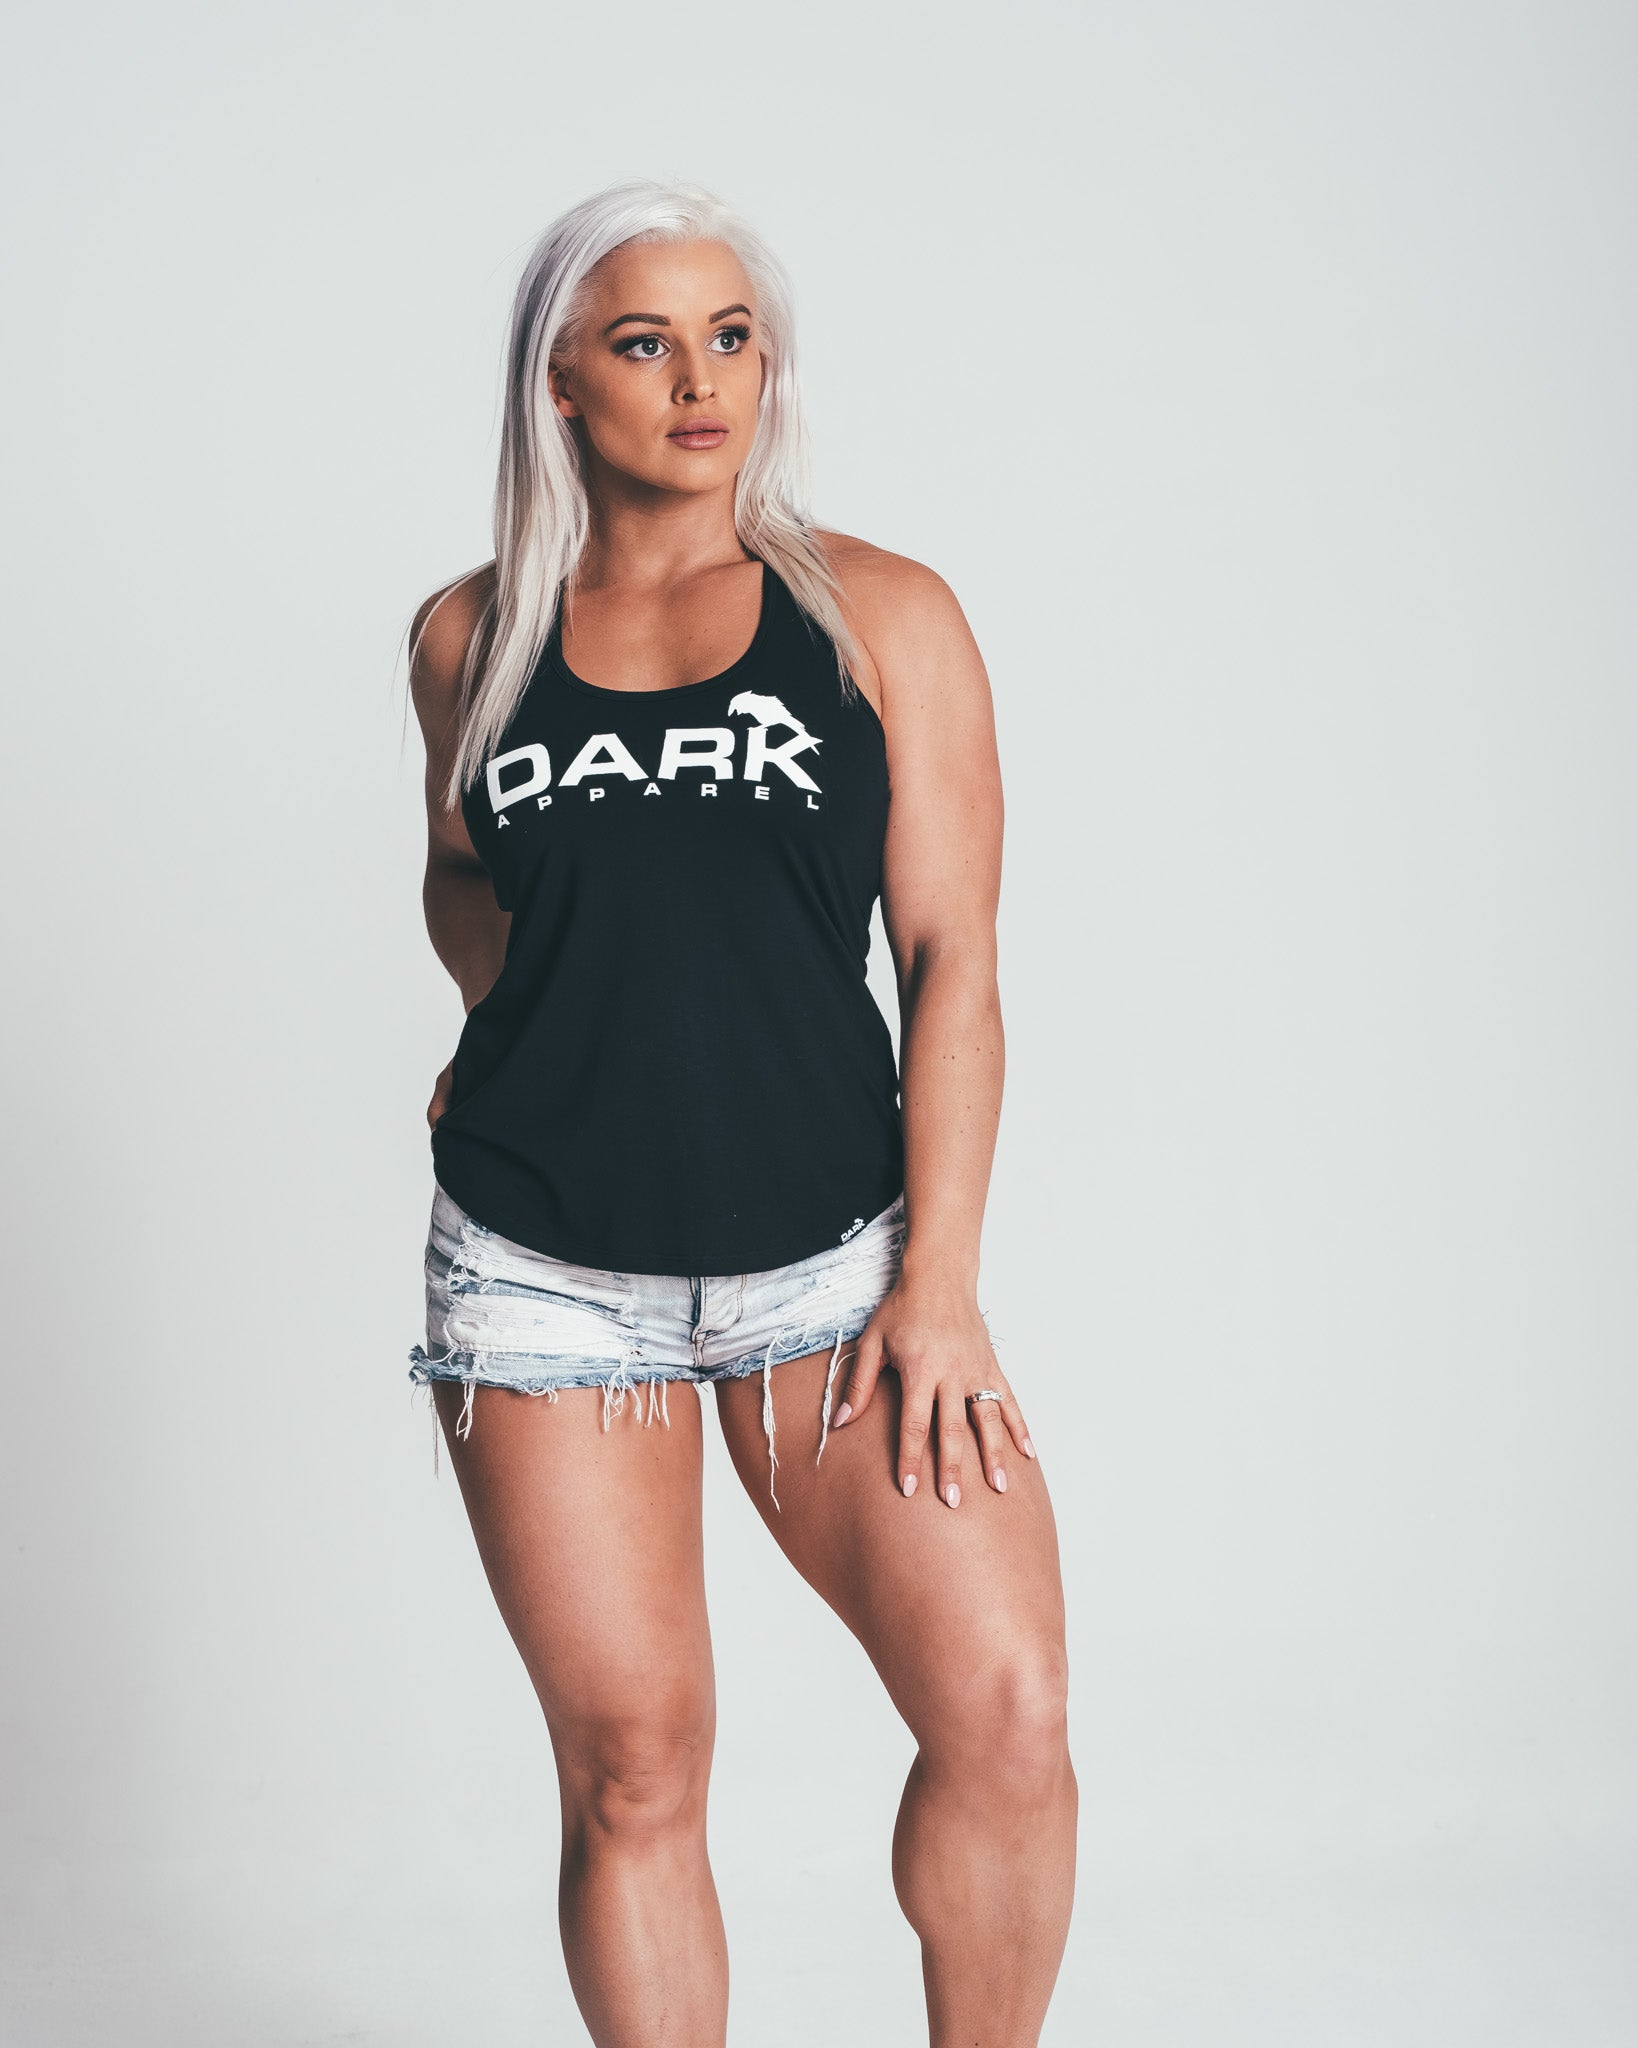 Dark Apparel fitted tank